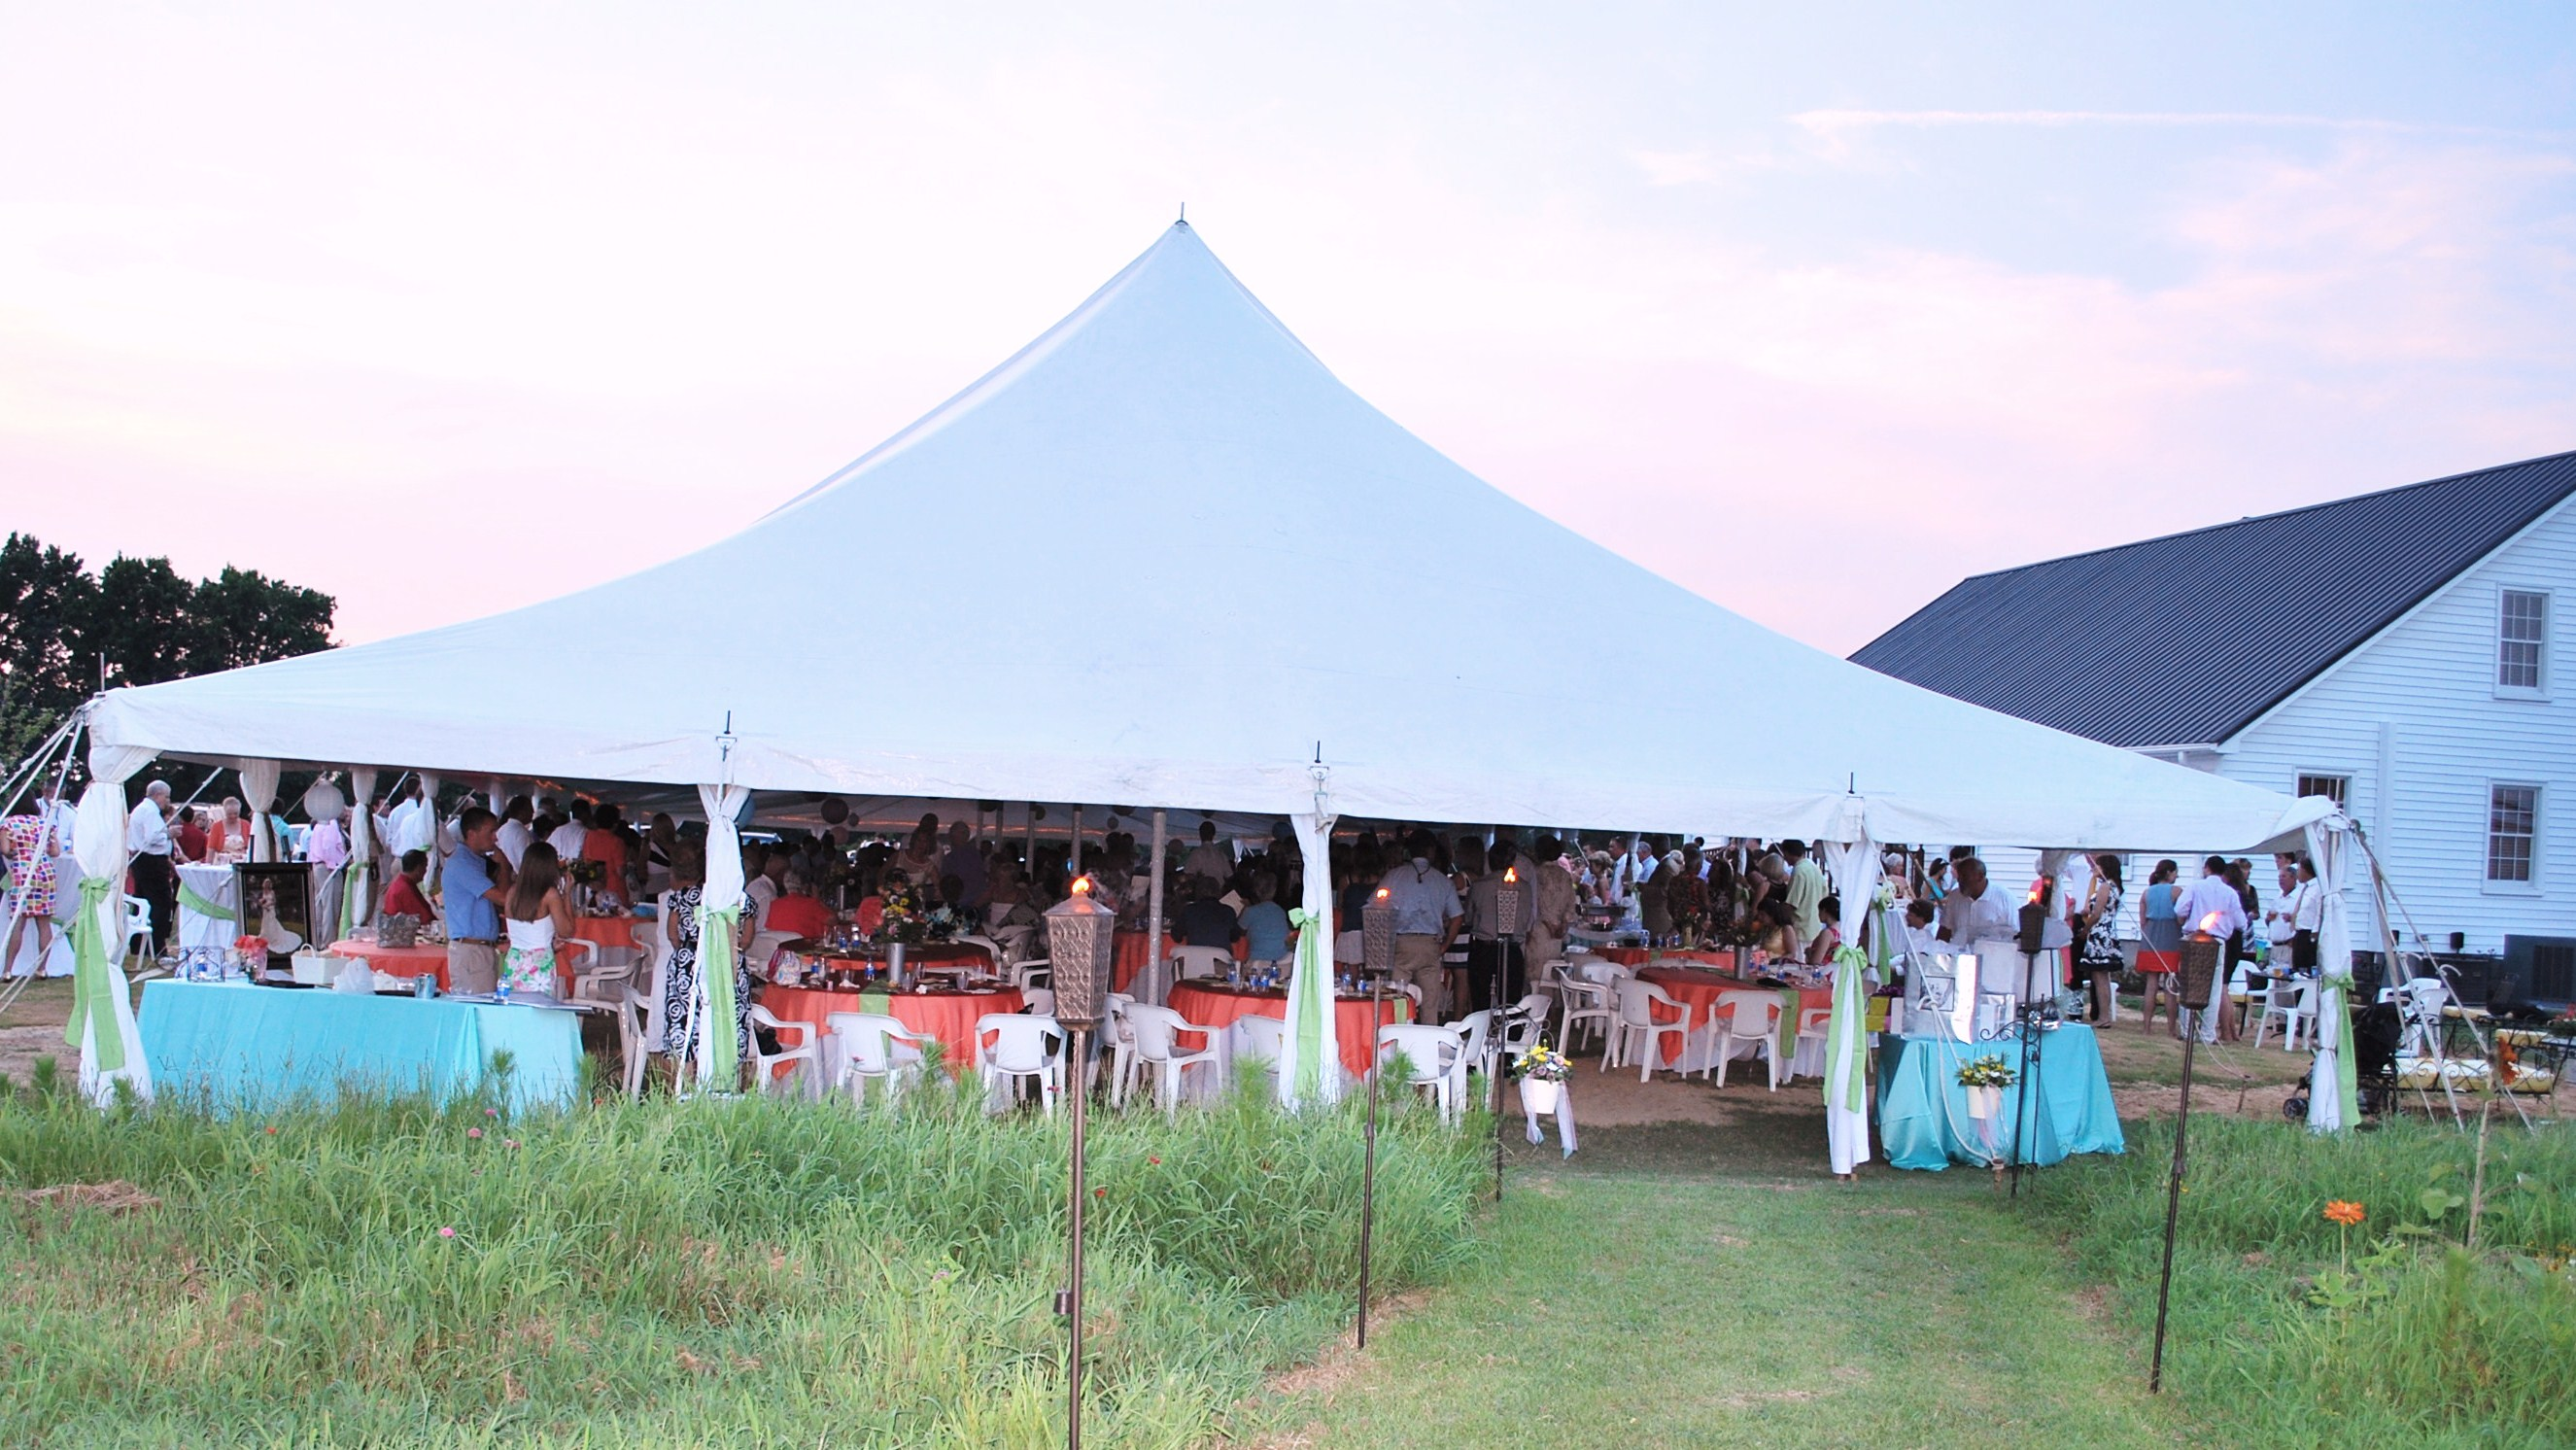 Farmer's Field is a Wedding and event venue at Hamstead Acres